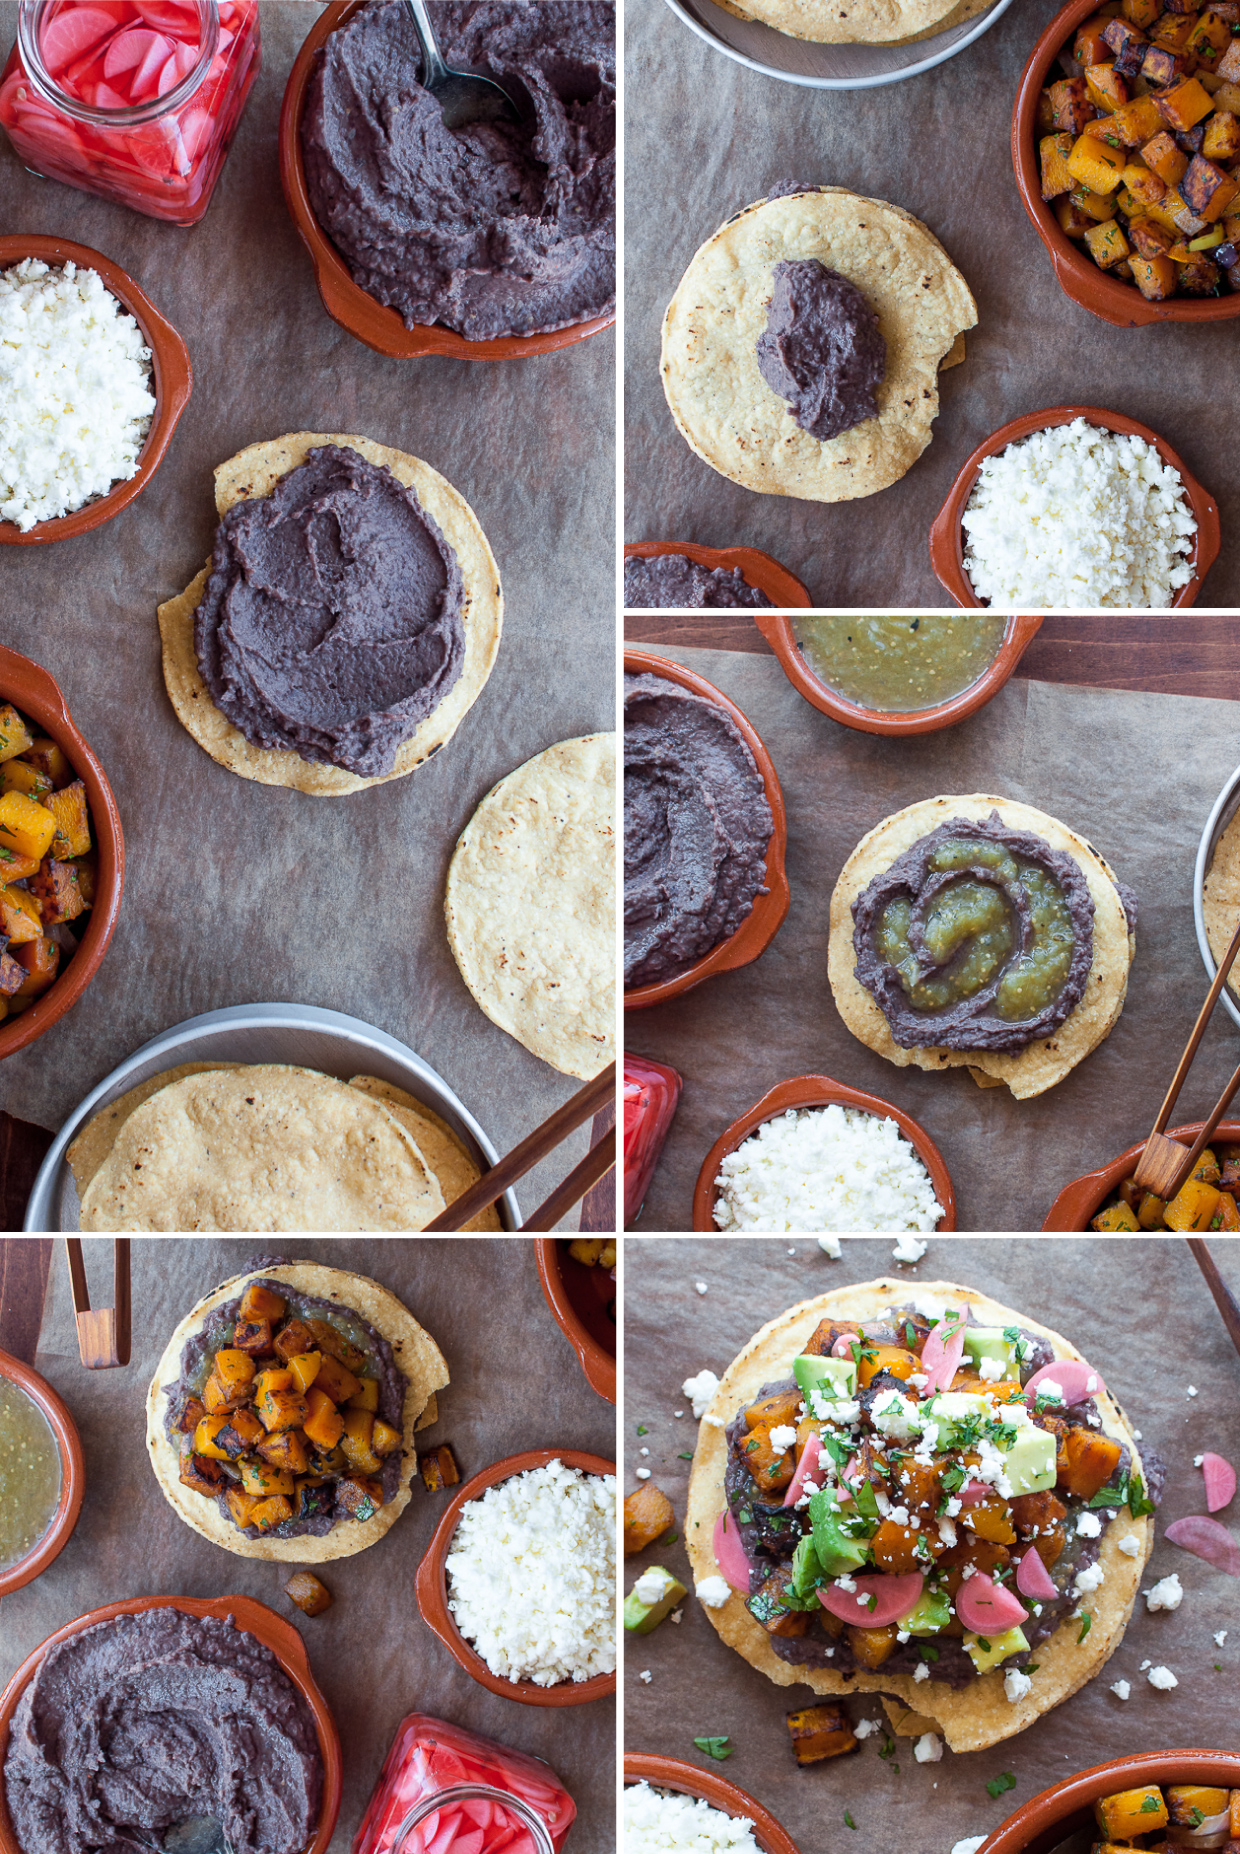 weeknight friendly vegetarian tostadas with the quickest black bean spread!